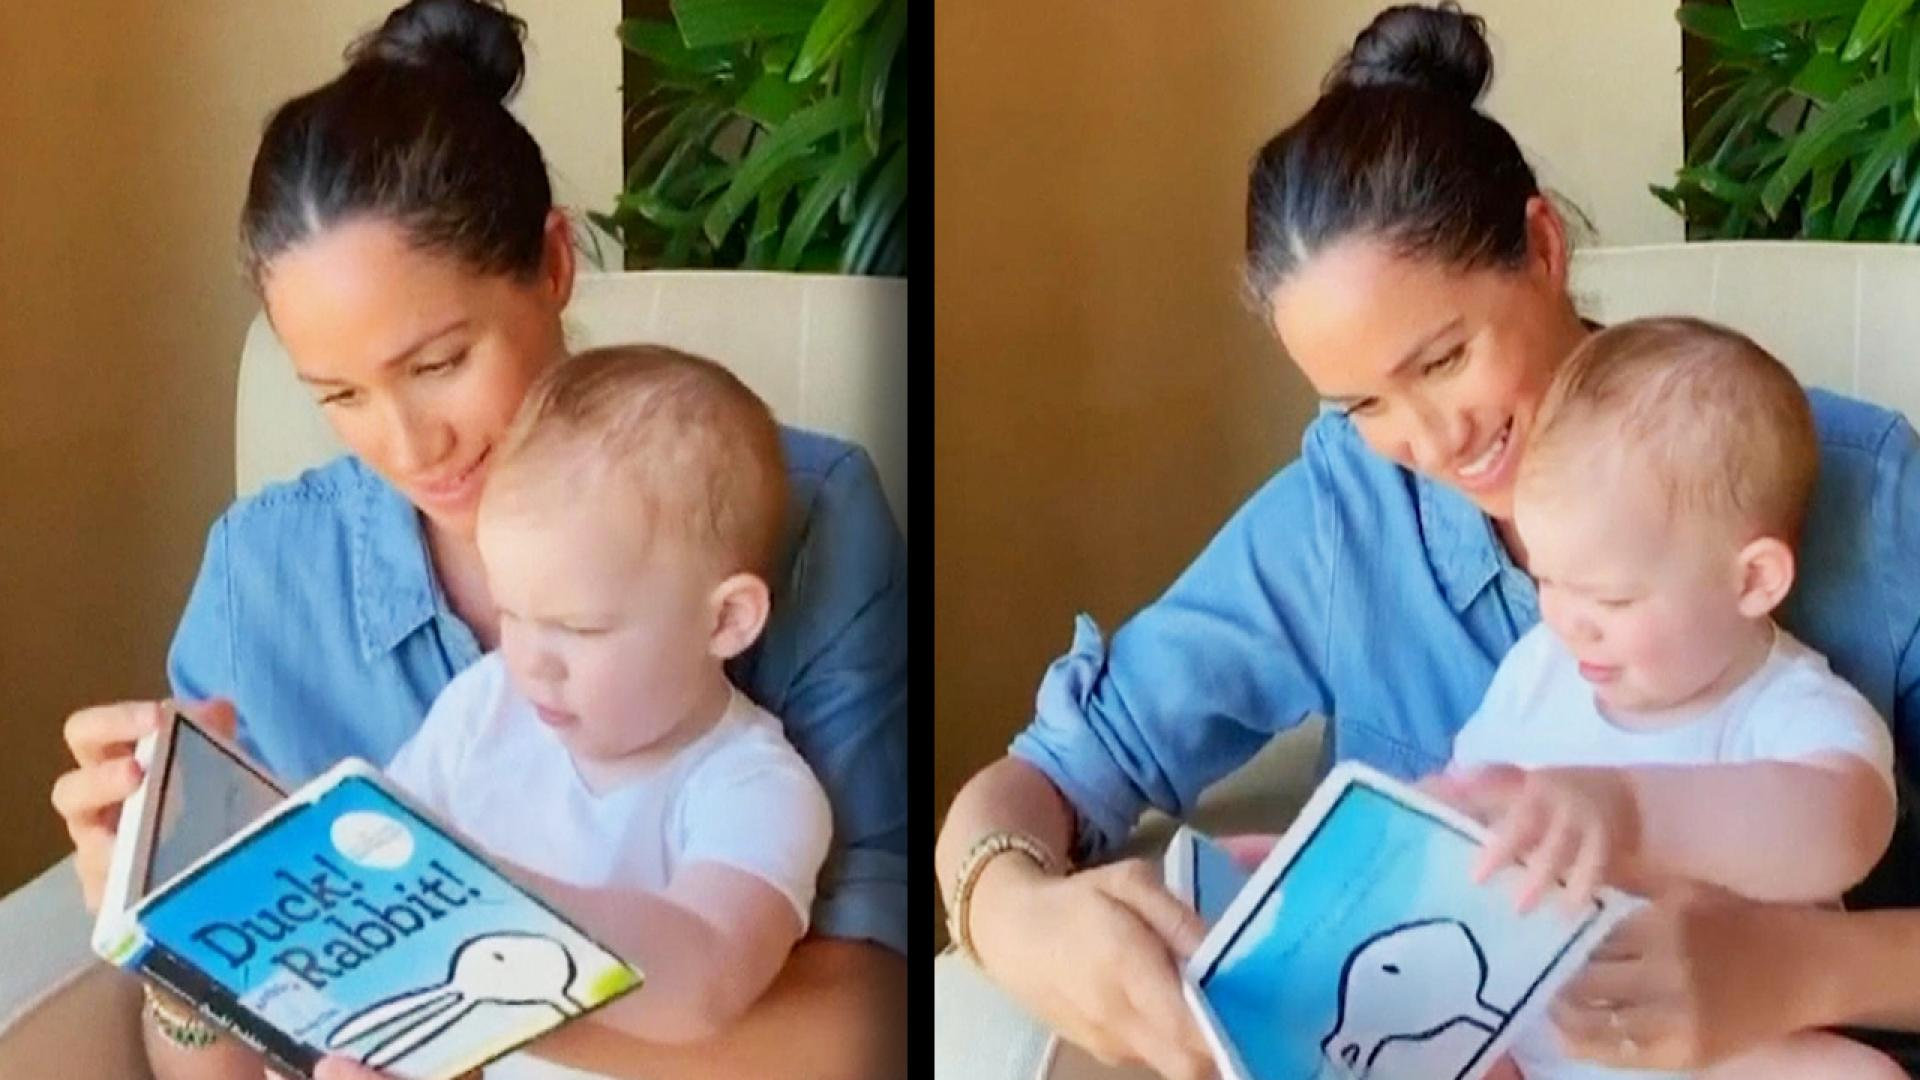 late co author of book meghan markle read to archie had her own touching love story inside edition book meghan markle read to archie had